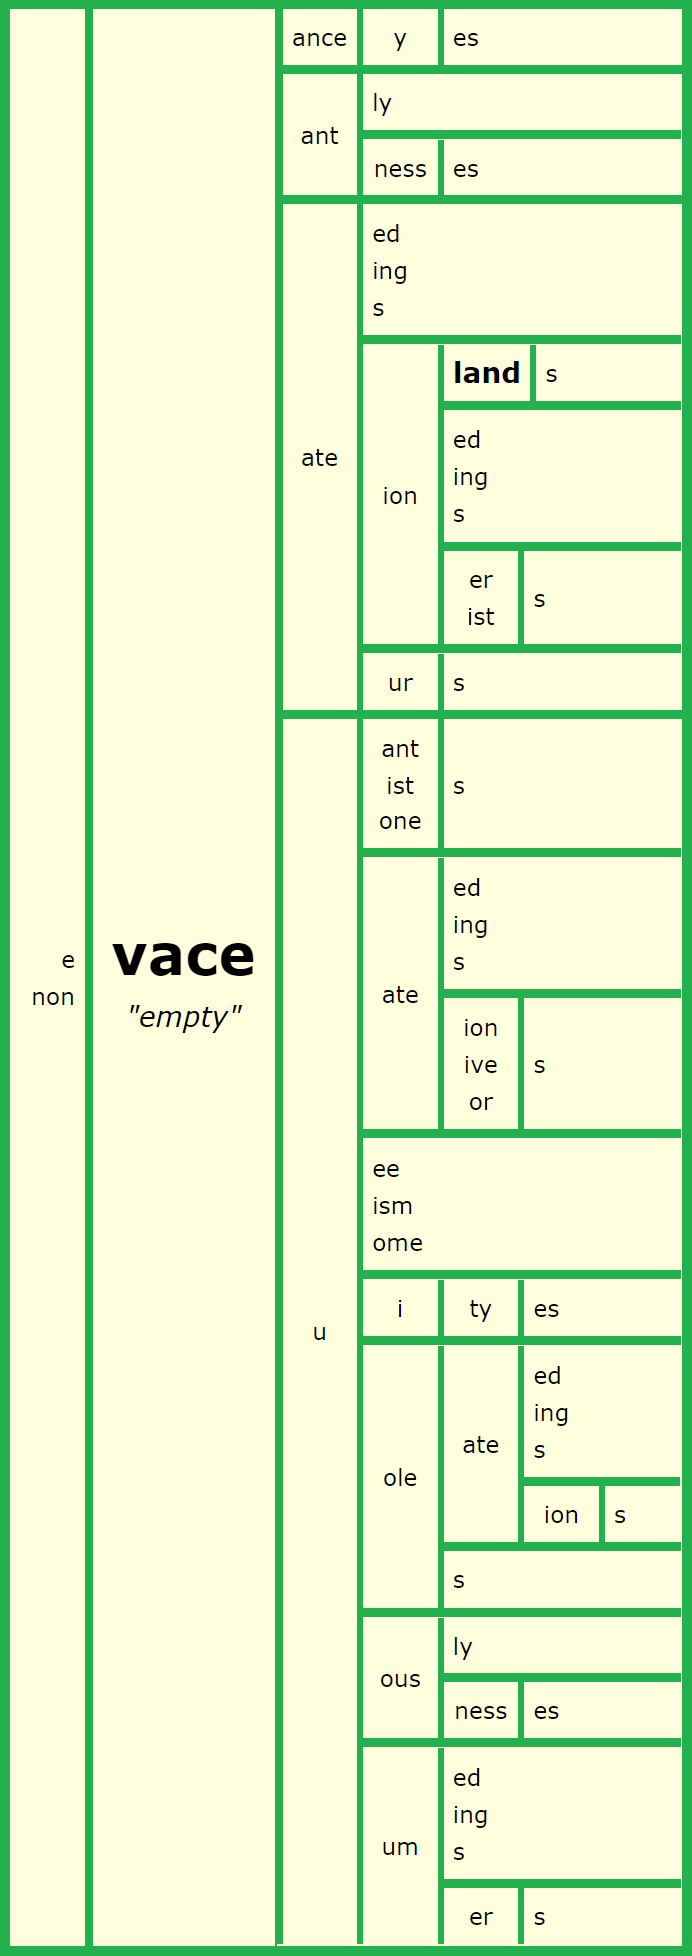 Vace Word Matrix